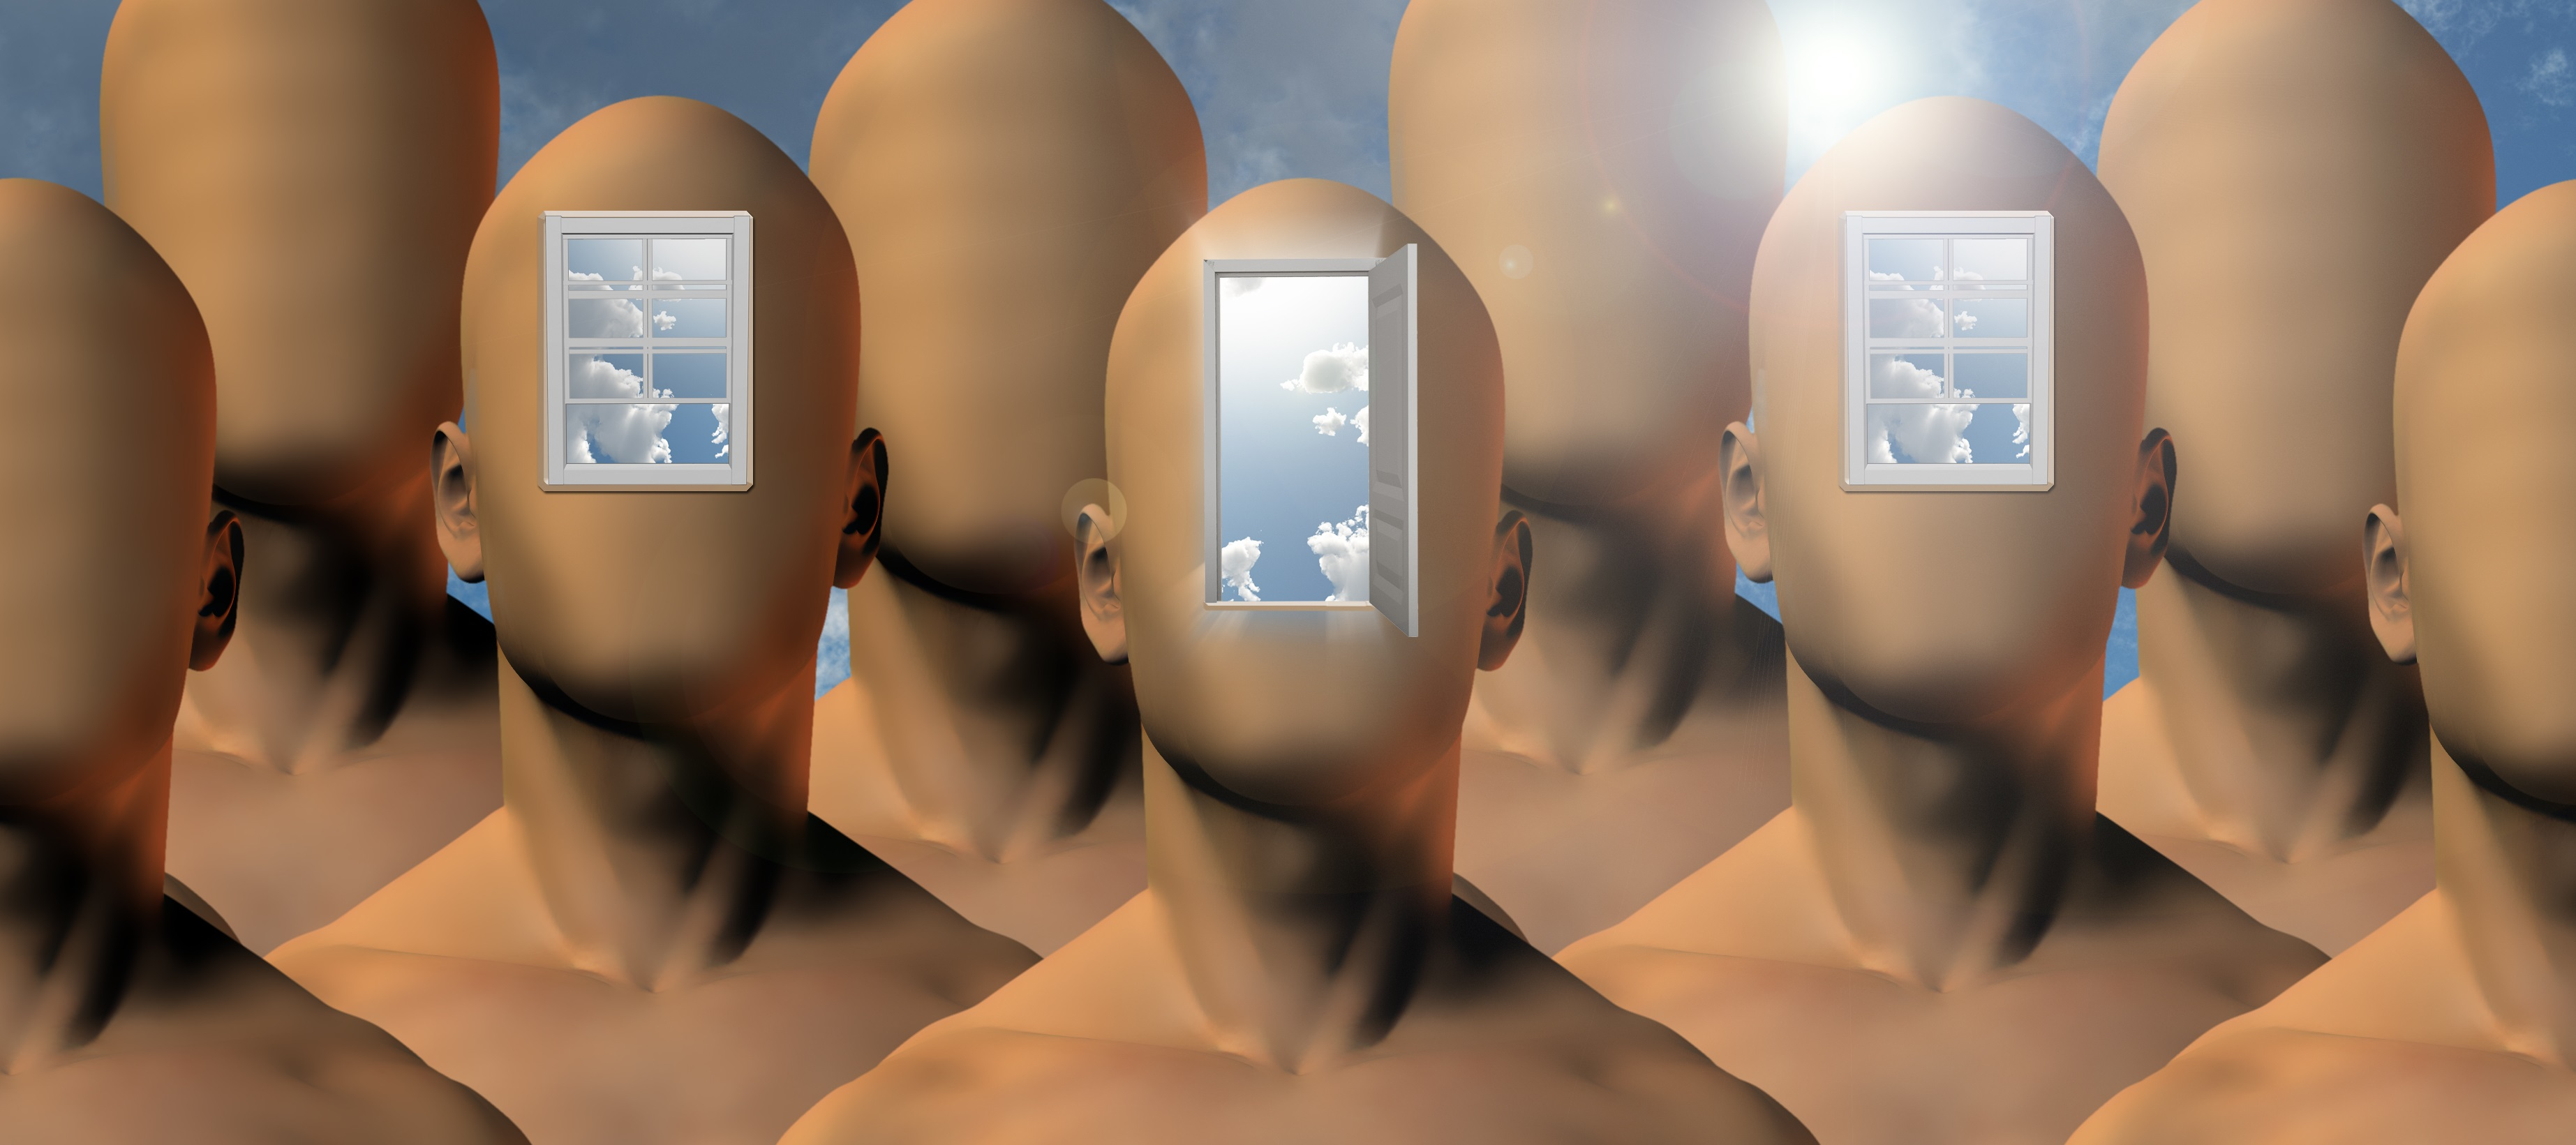 In the mind's eye: YRC reinvigorates age-old philosophical puzzle